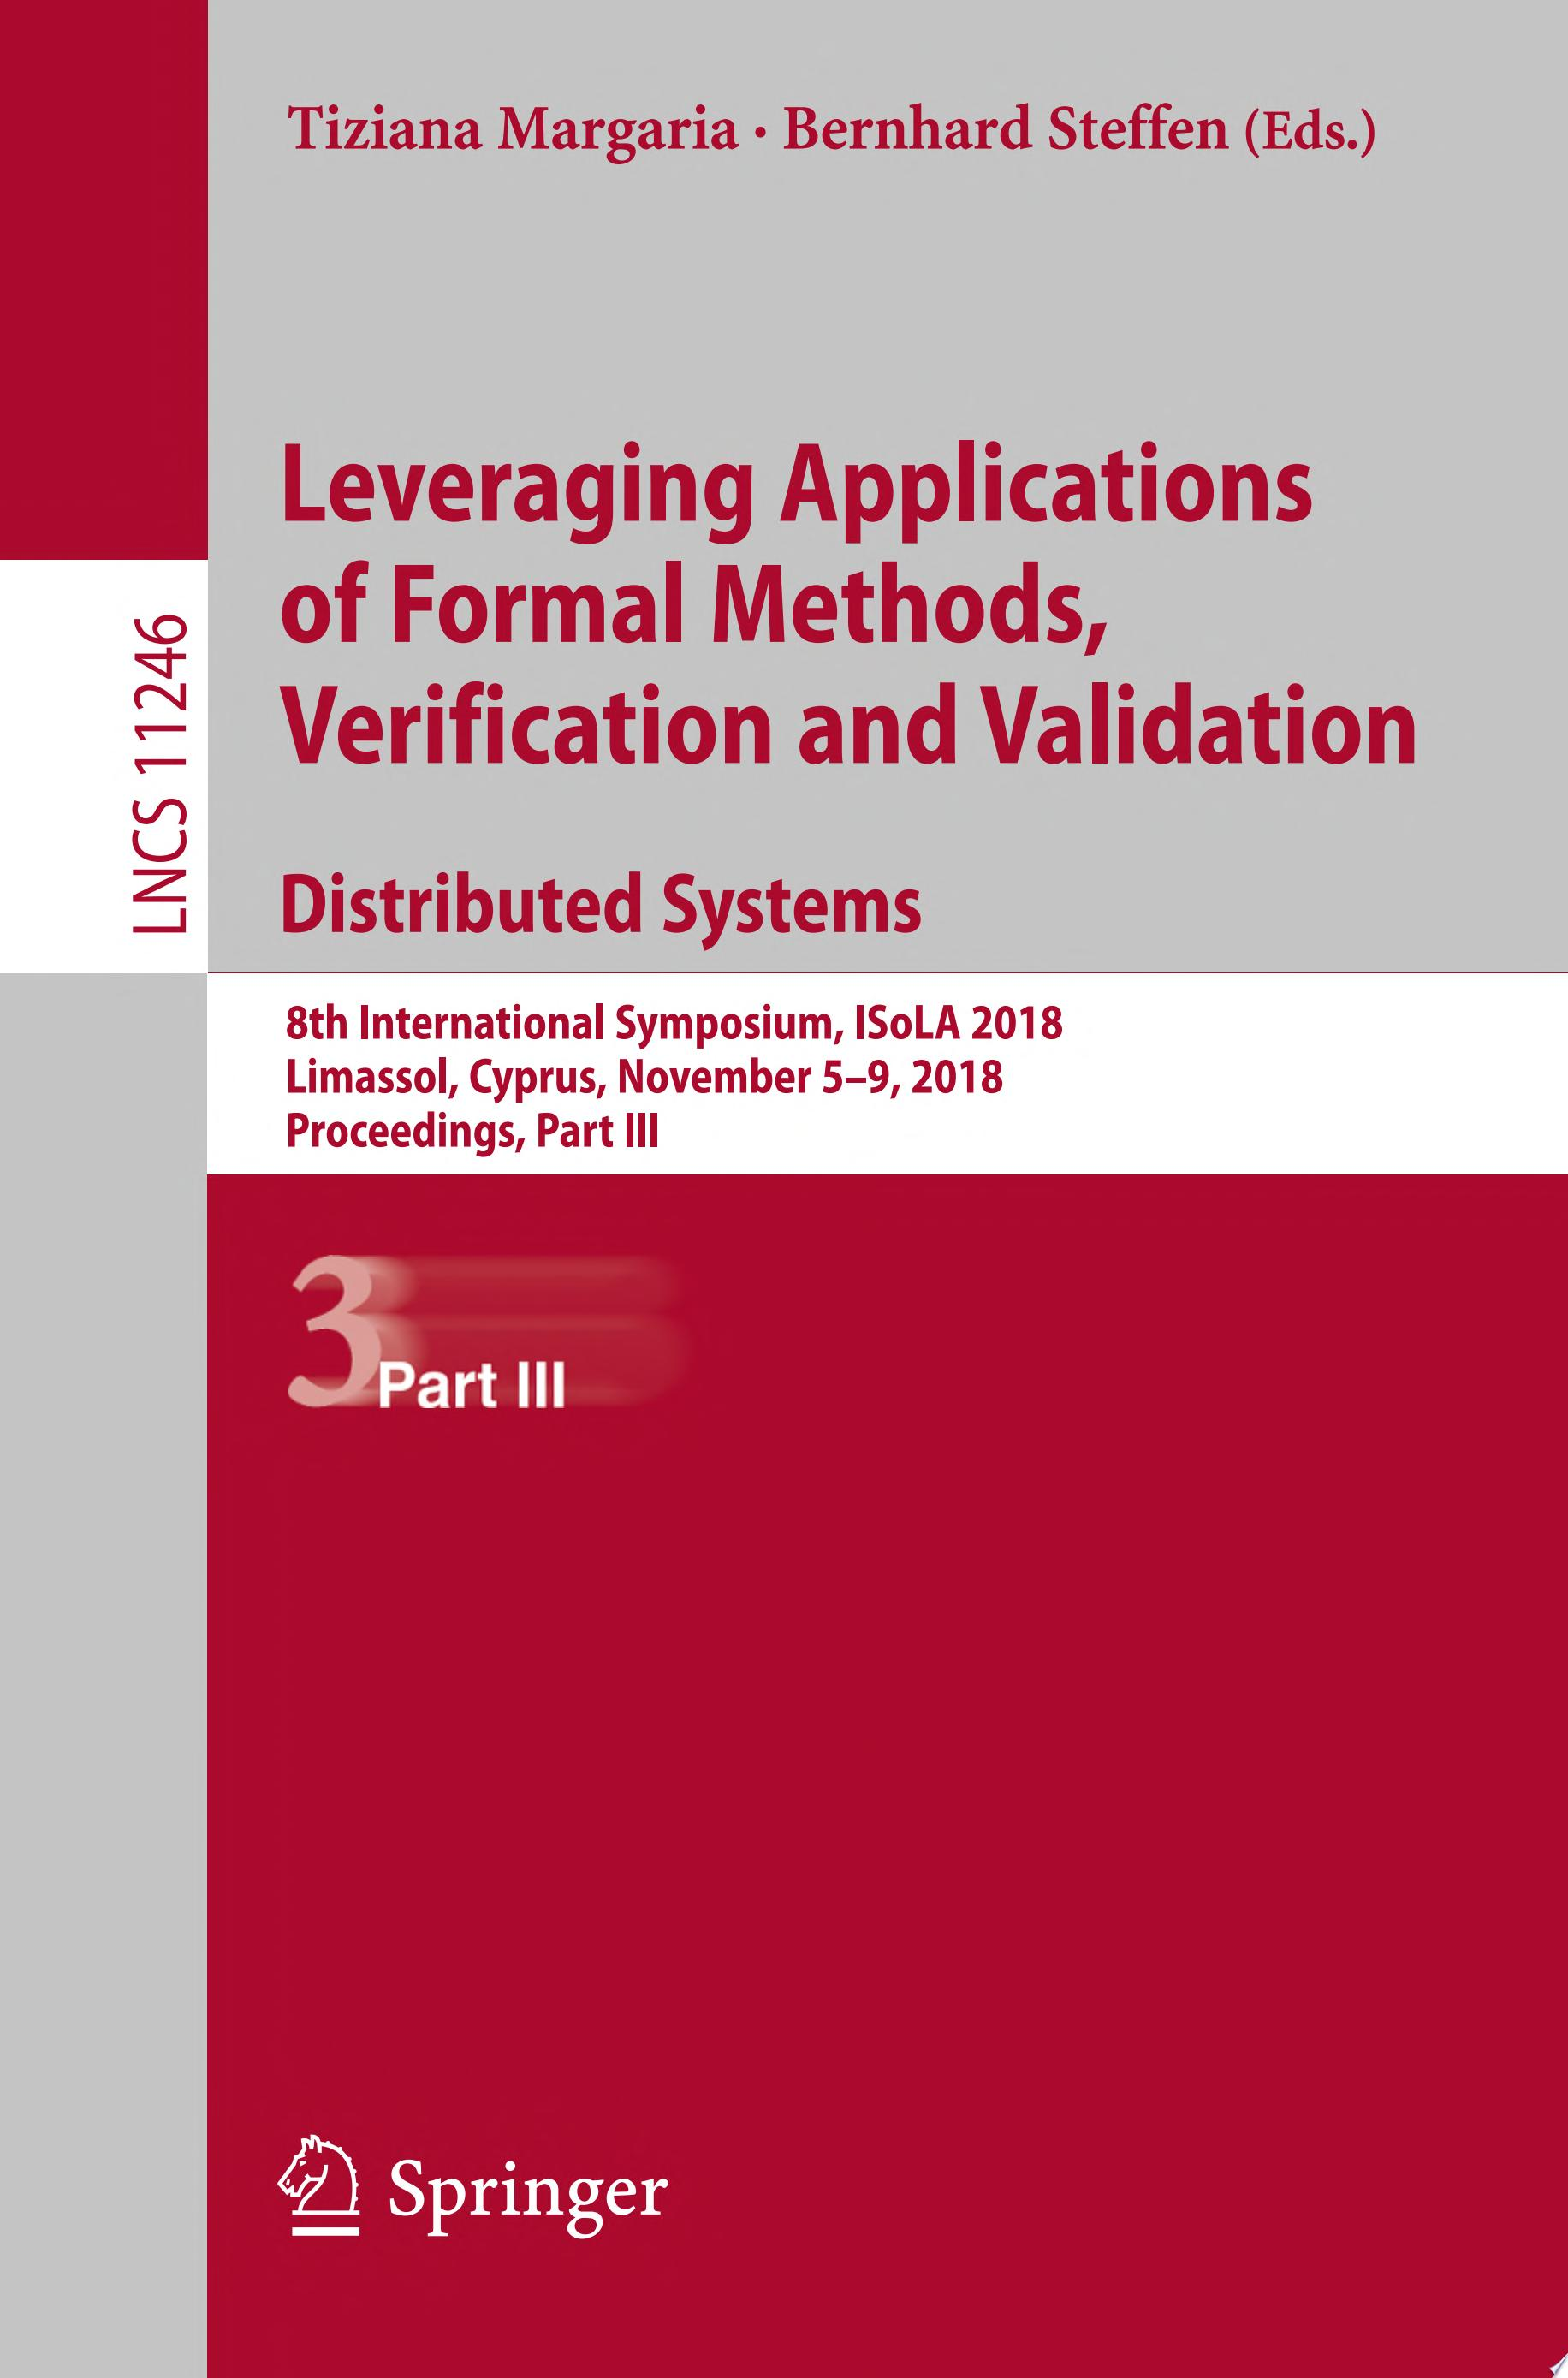 Leveraging Applications of Formal Methods  Verification and Validation  Distributed Systems